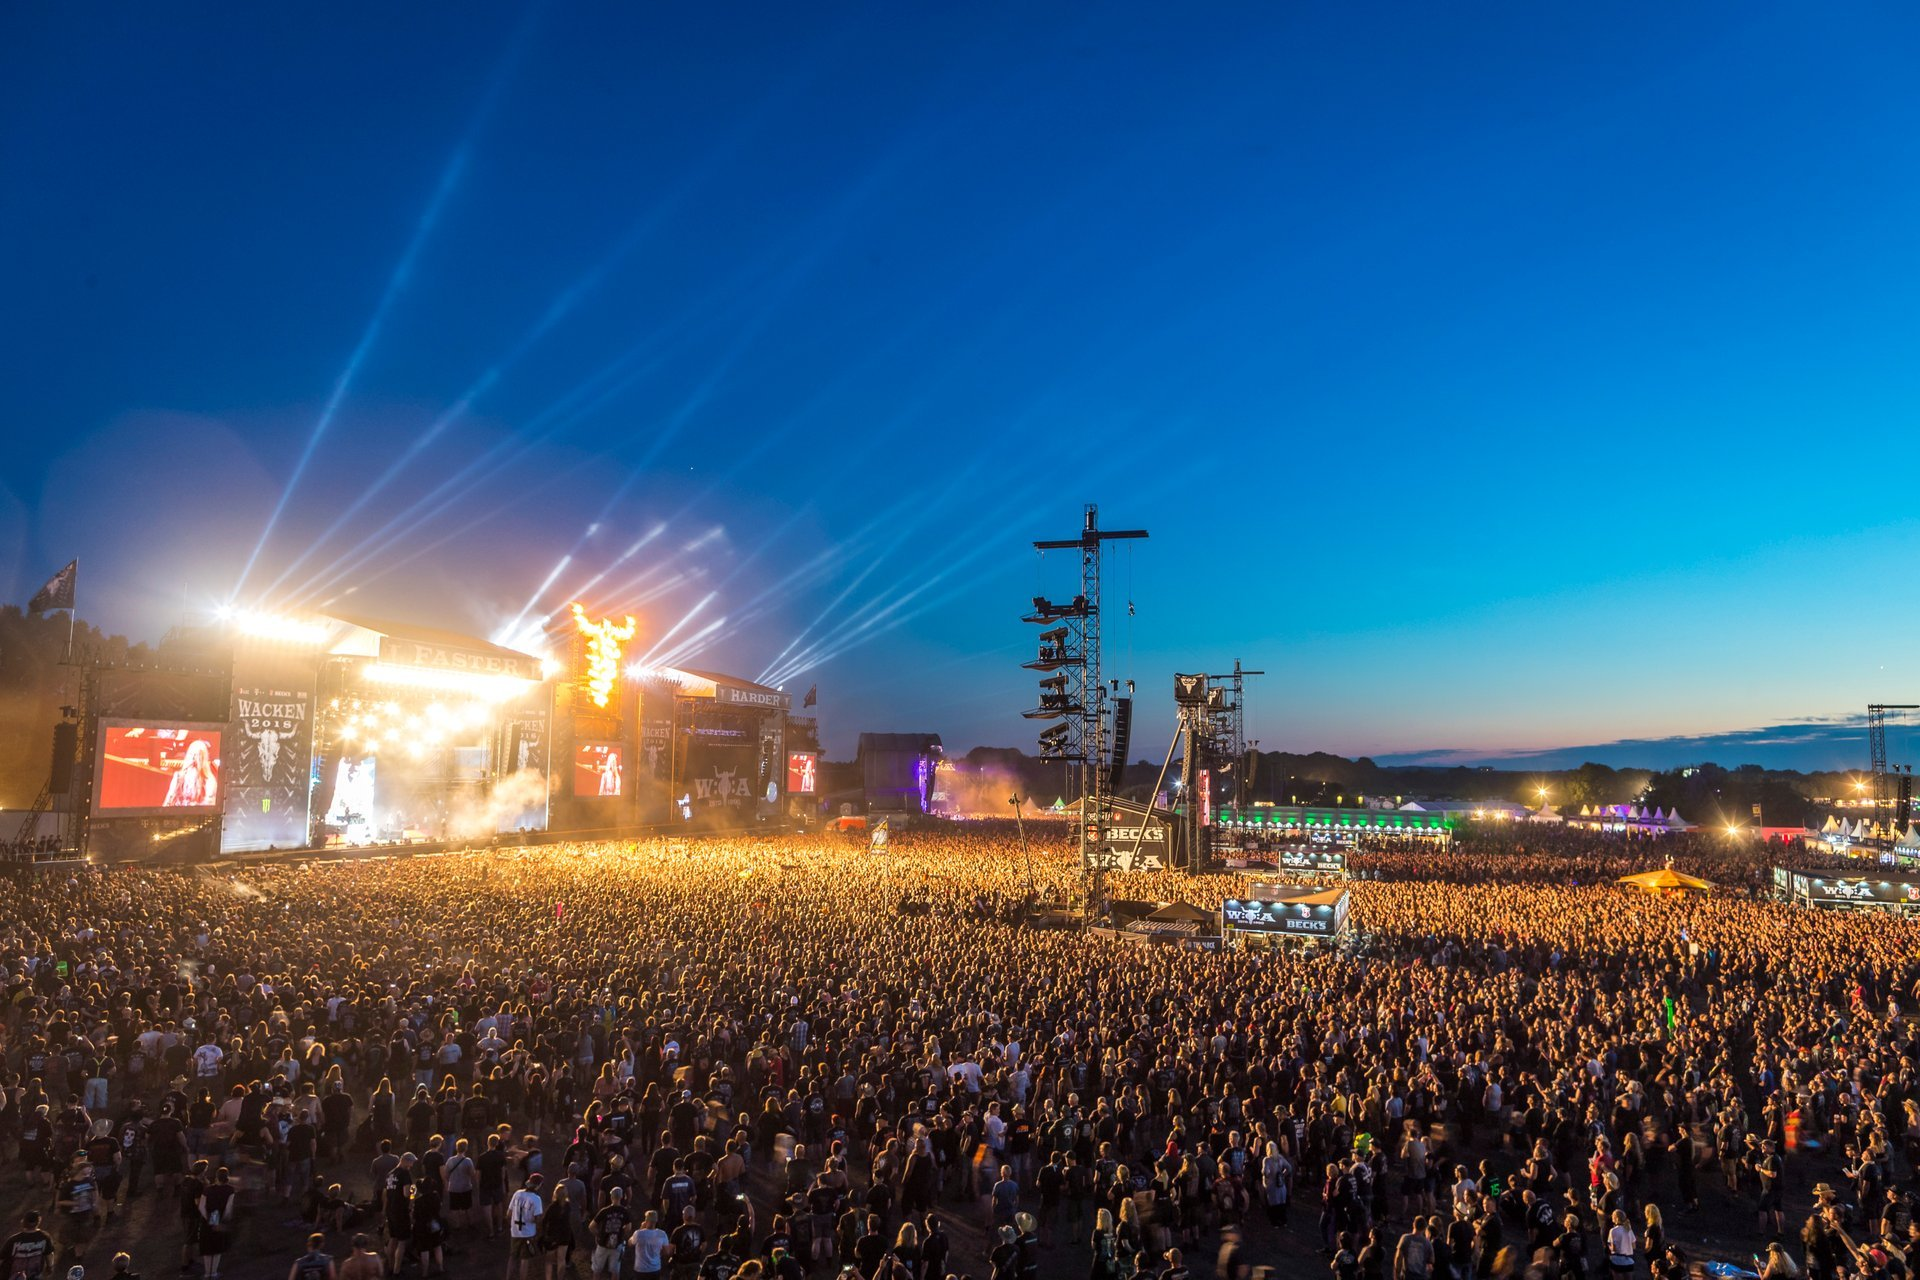 Best time to see Wacken Open Air 2020